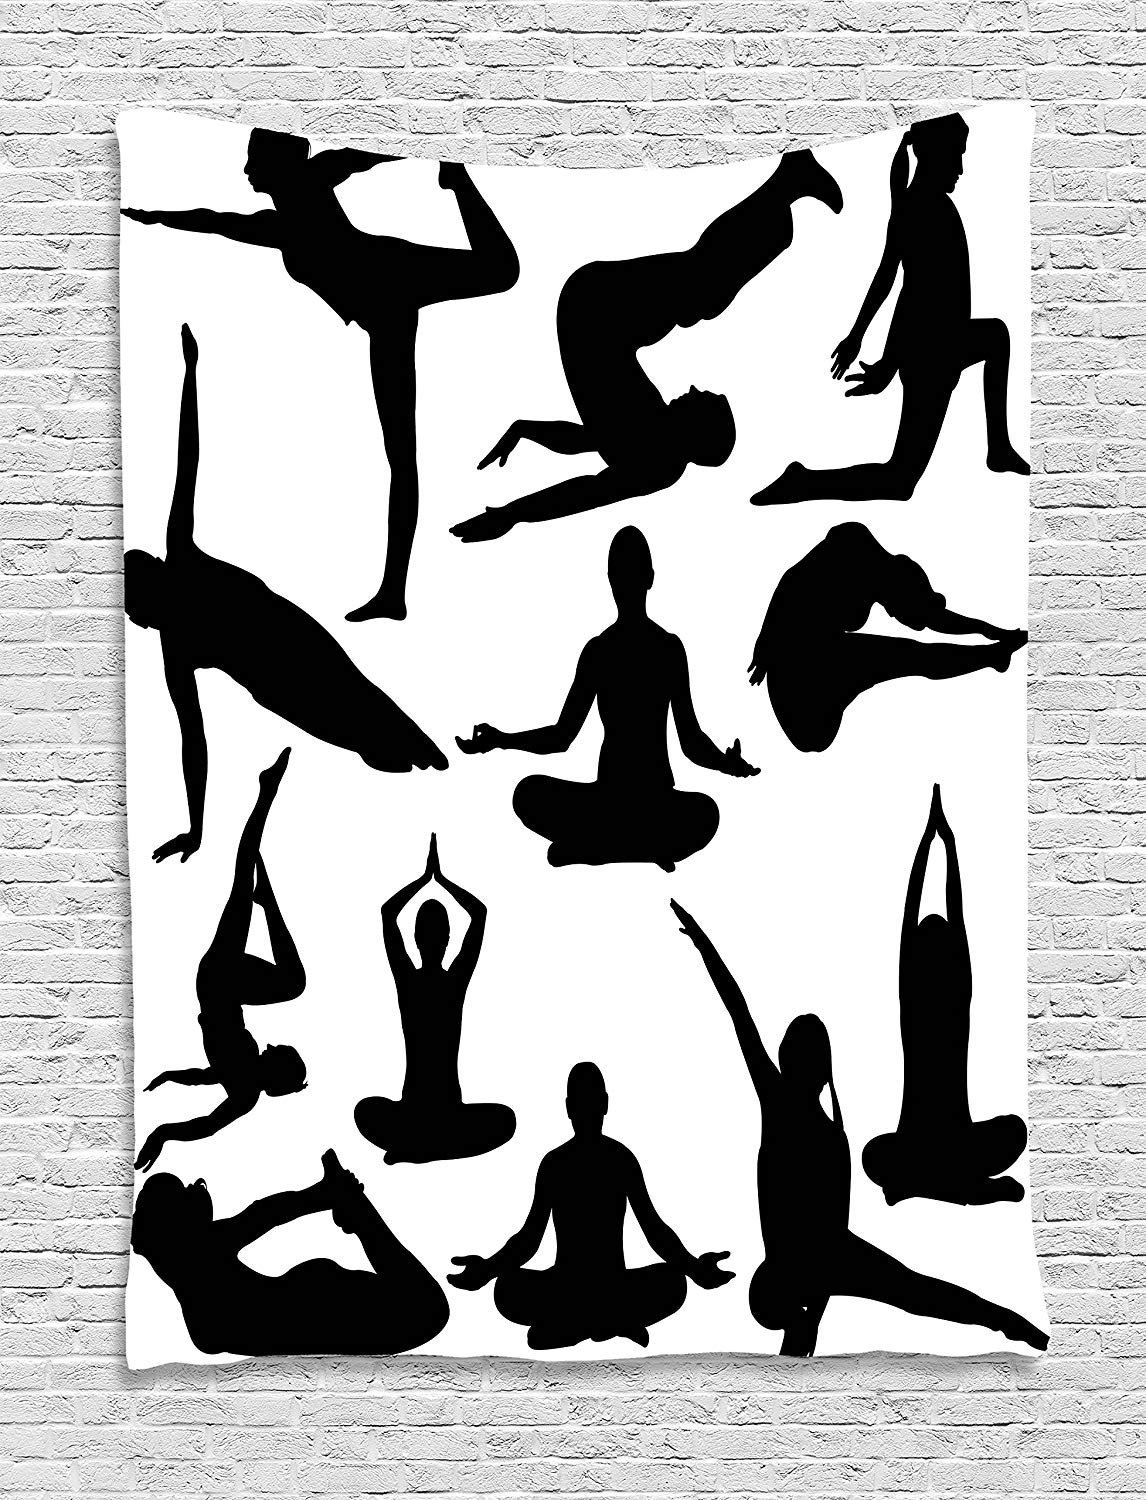 XHFITCLtd Meditation Tapestry, Yoga Postures Woman Body Relaxation Chakra Mystic Hobby Theme Hippie Print, Wall Hanging for Bedroom Living Room Dorm, 60 W X 80 L Inches, Black White